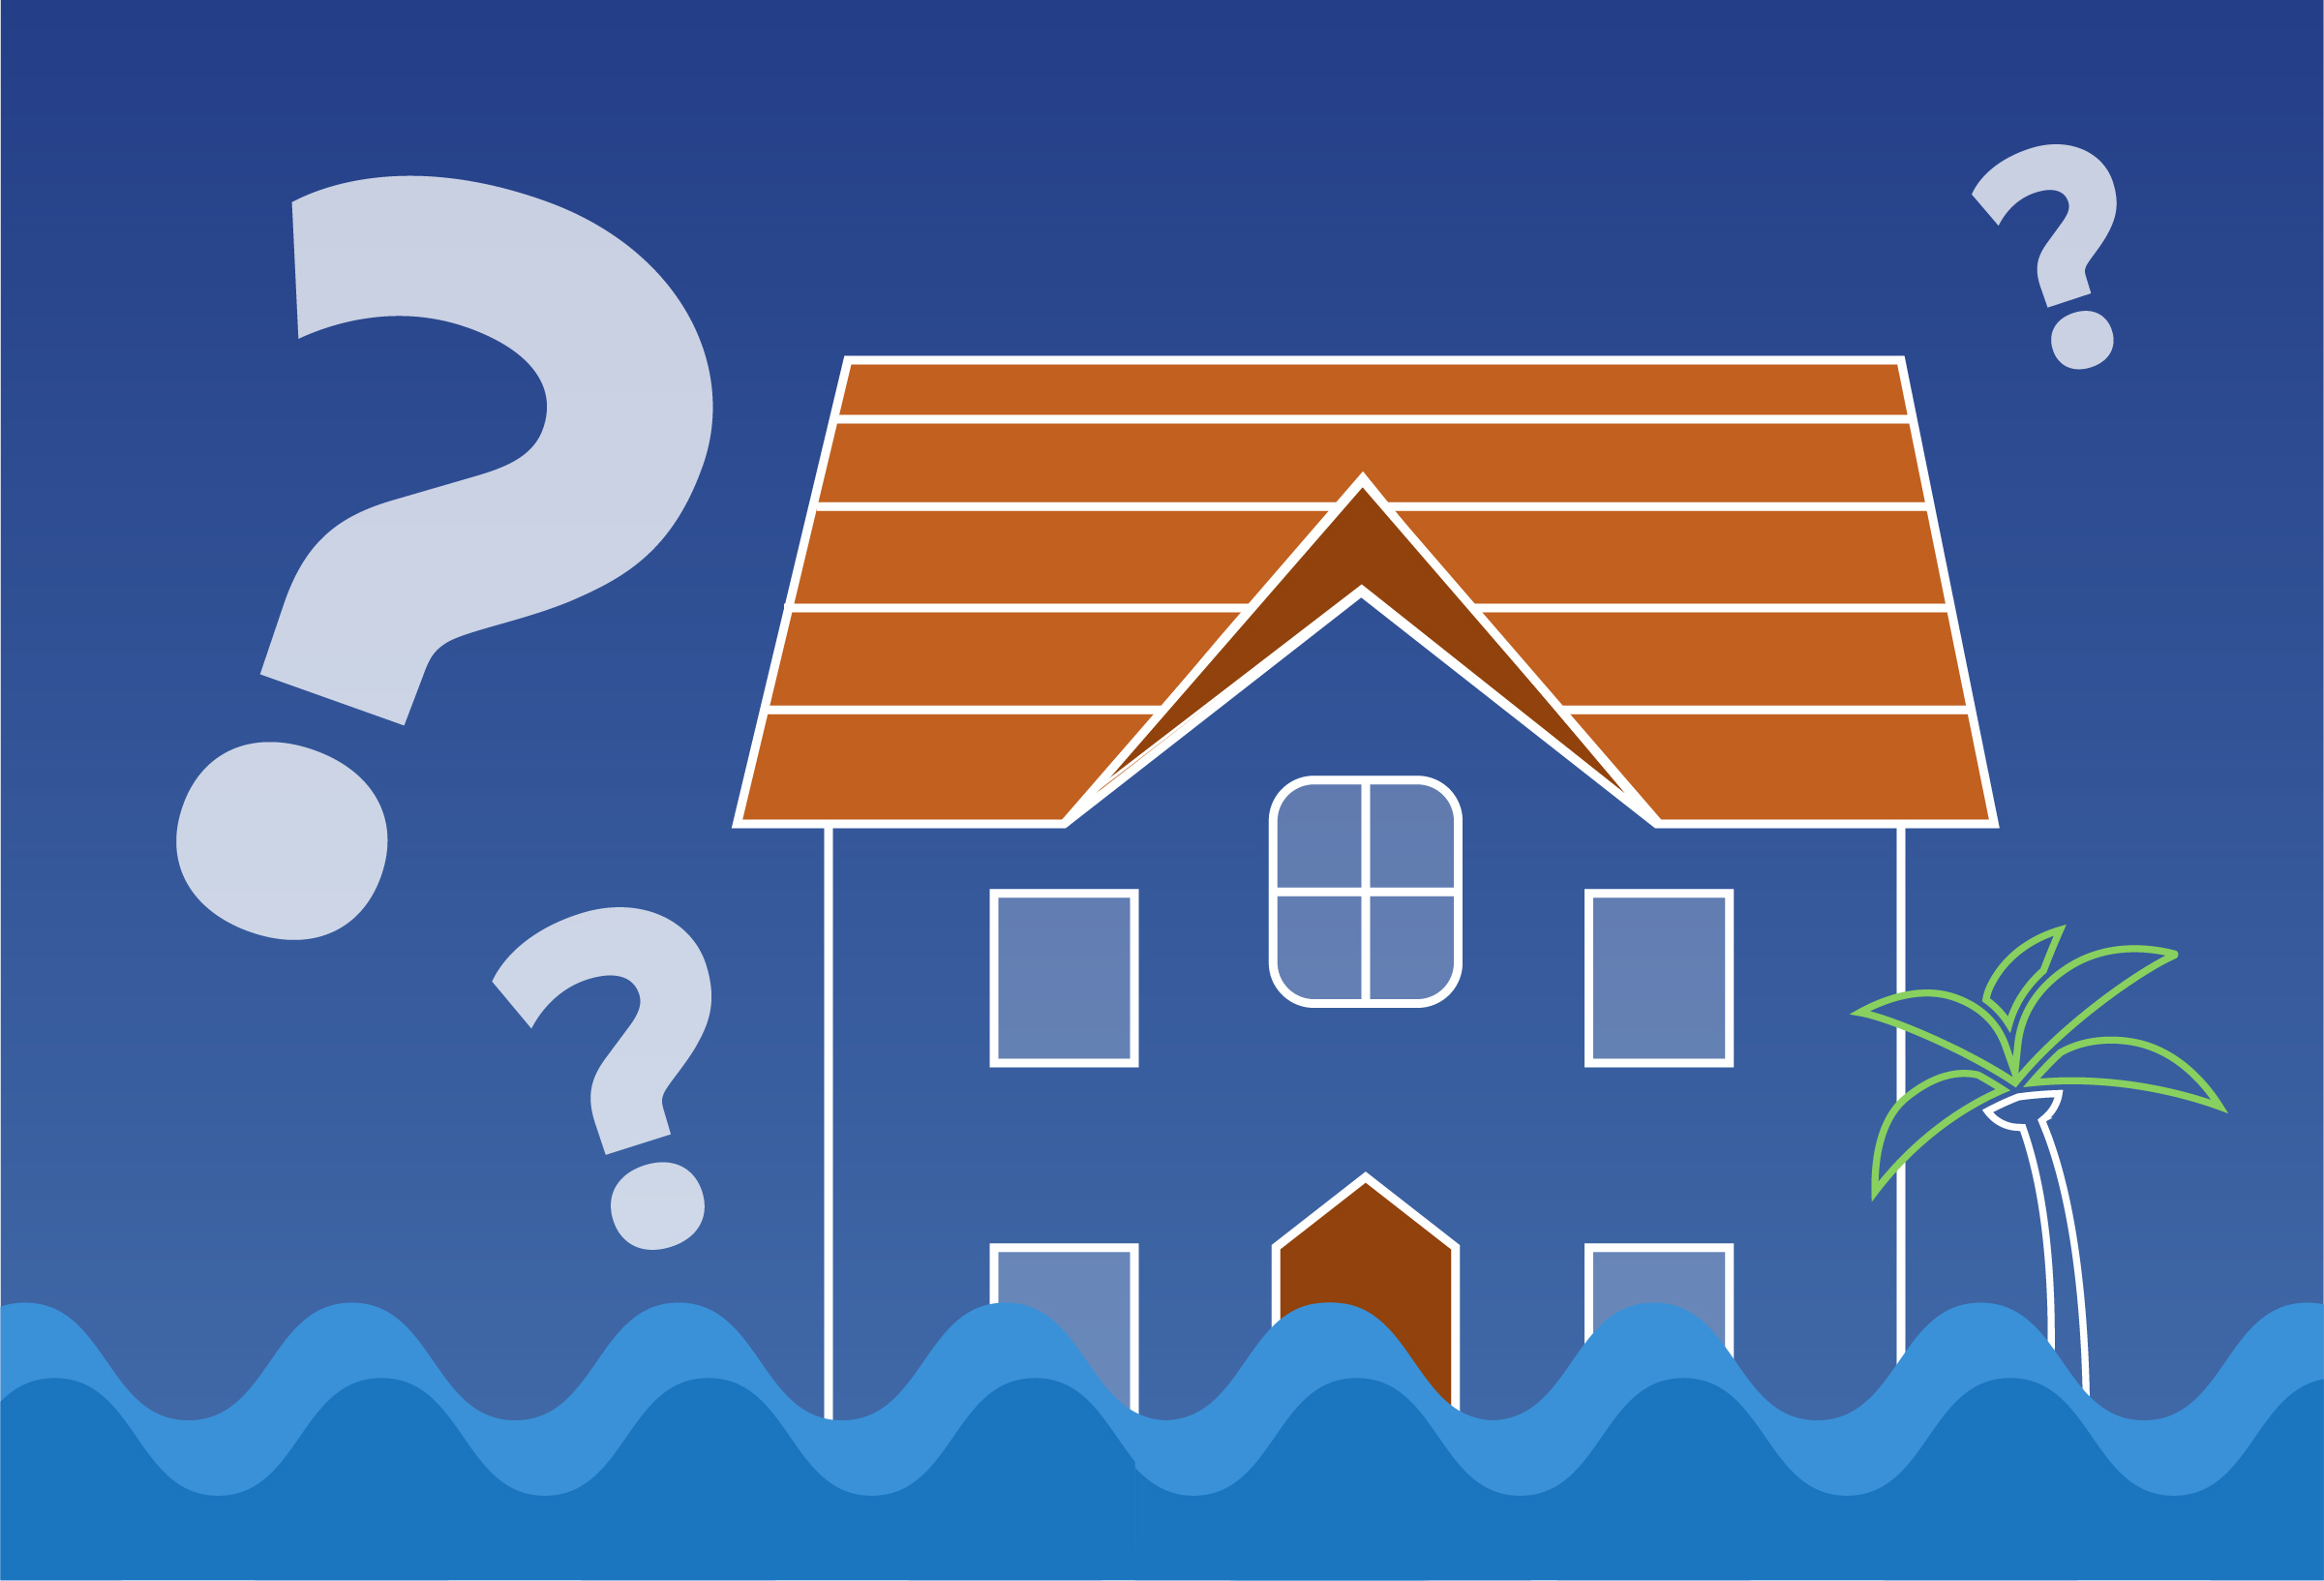 How to skillfully respond to flood misconceptions